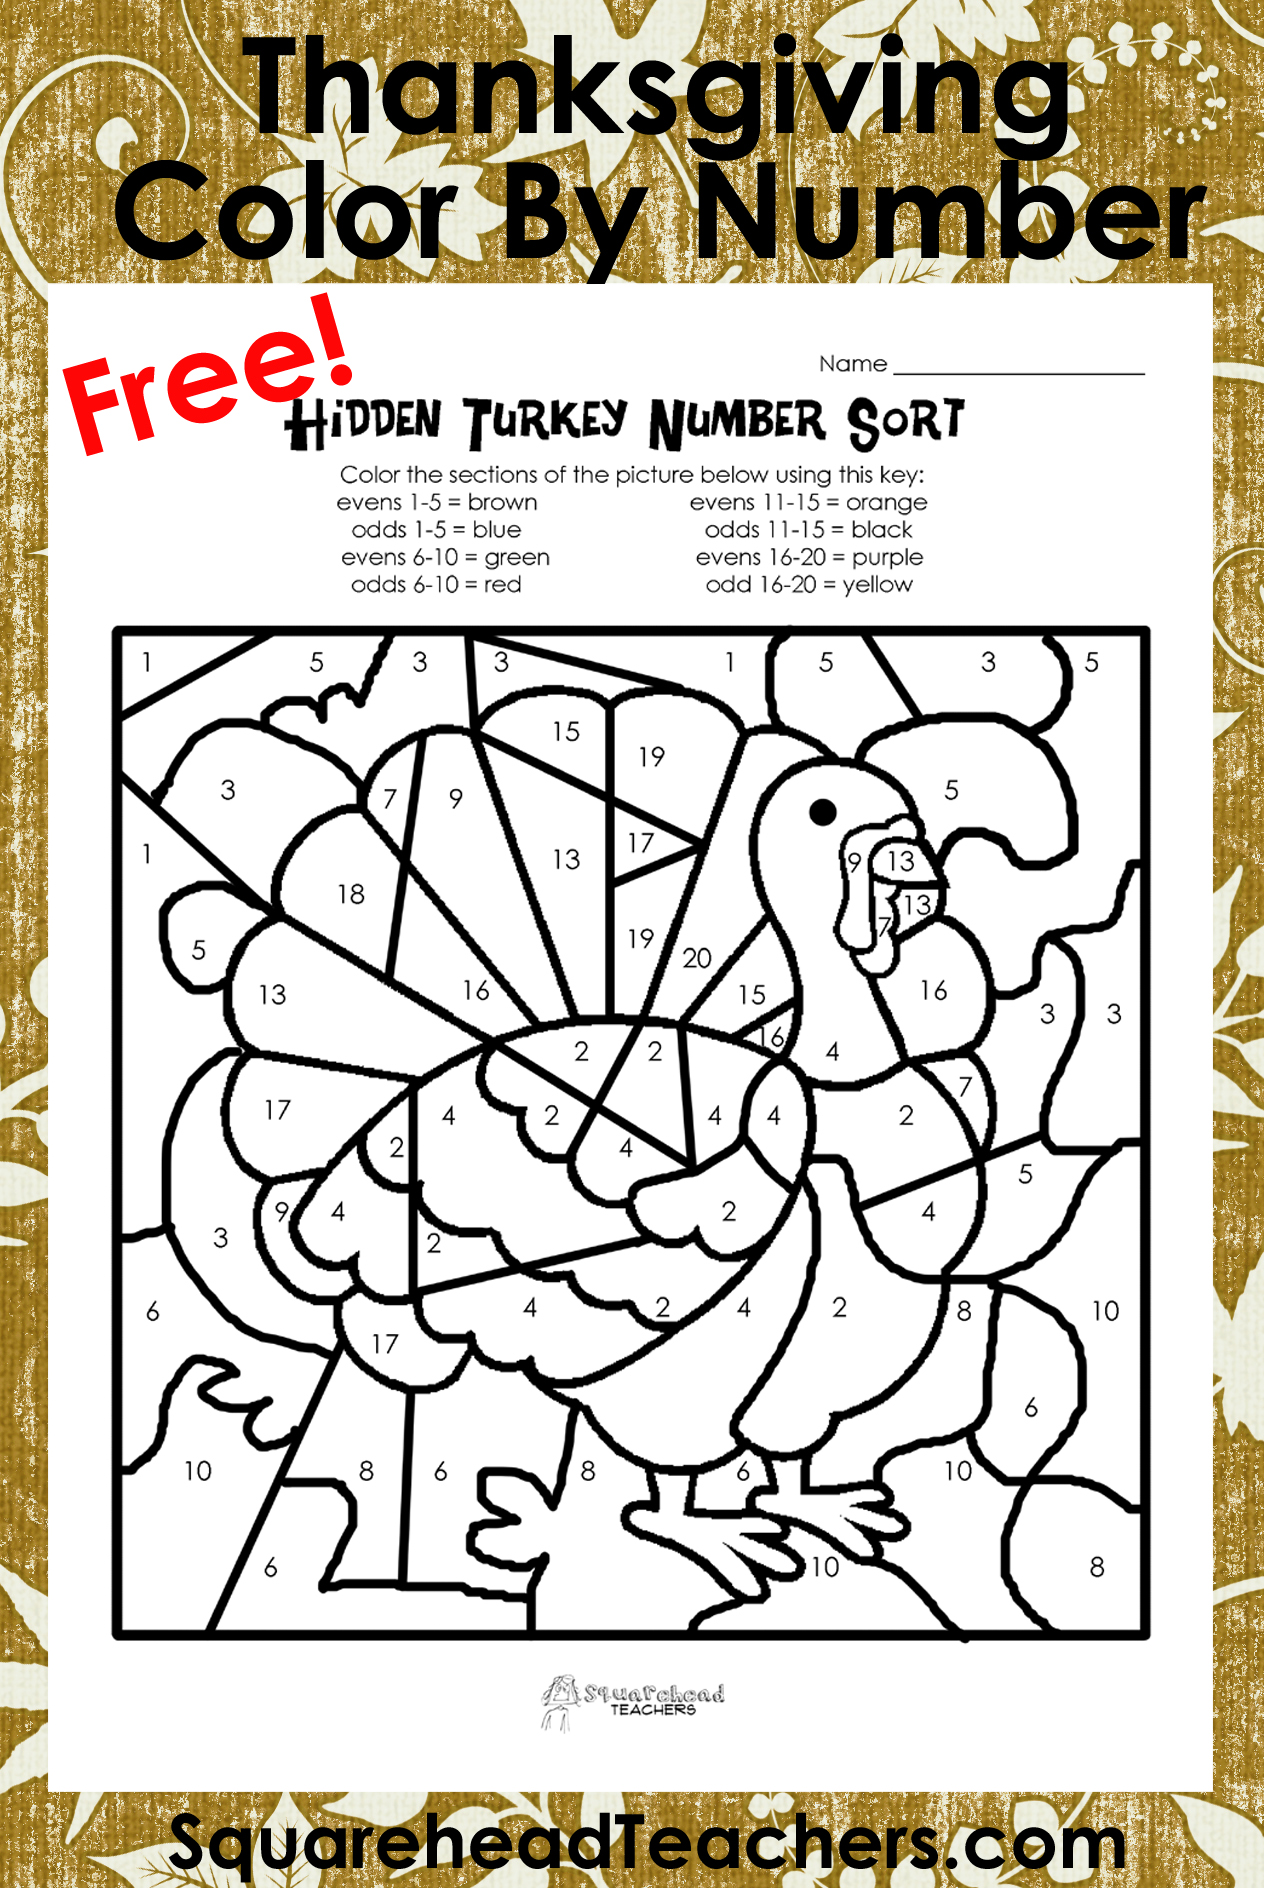 Color by numbers multiplication worksheet - Thanksgiving Color By Number Simple Addition Squarehead Teachers